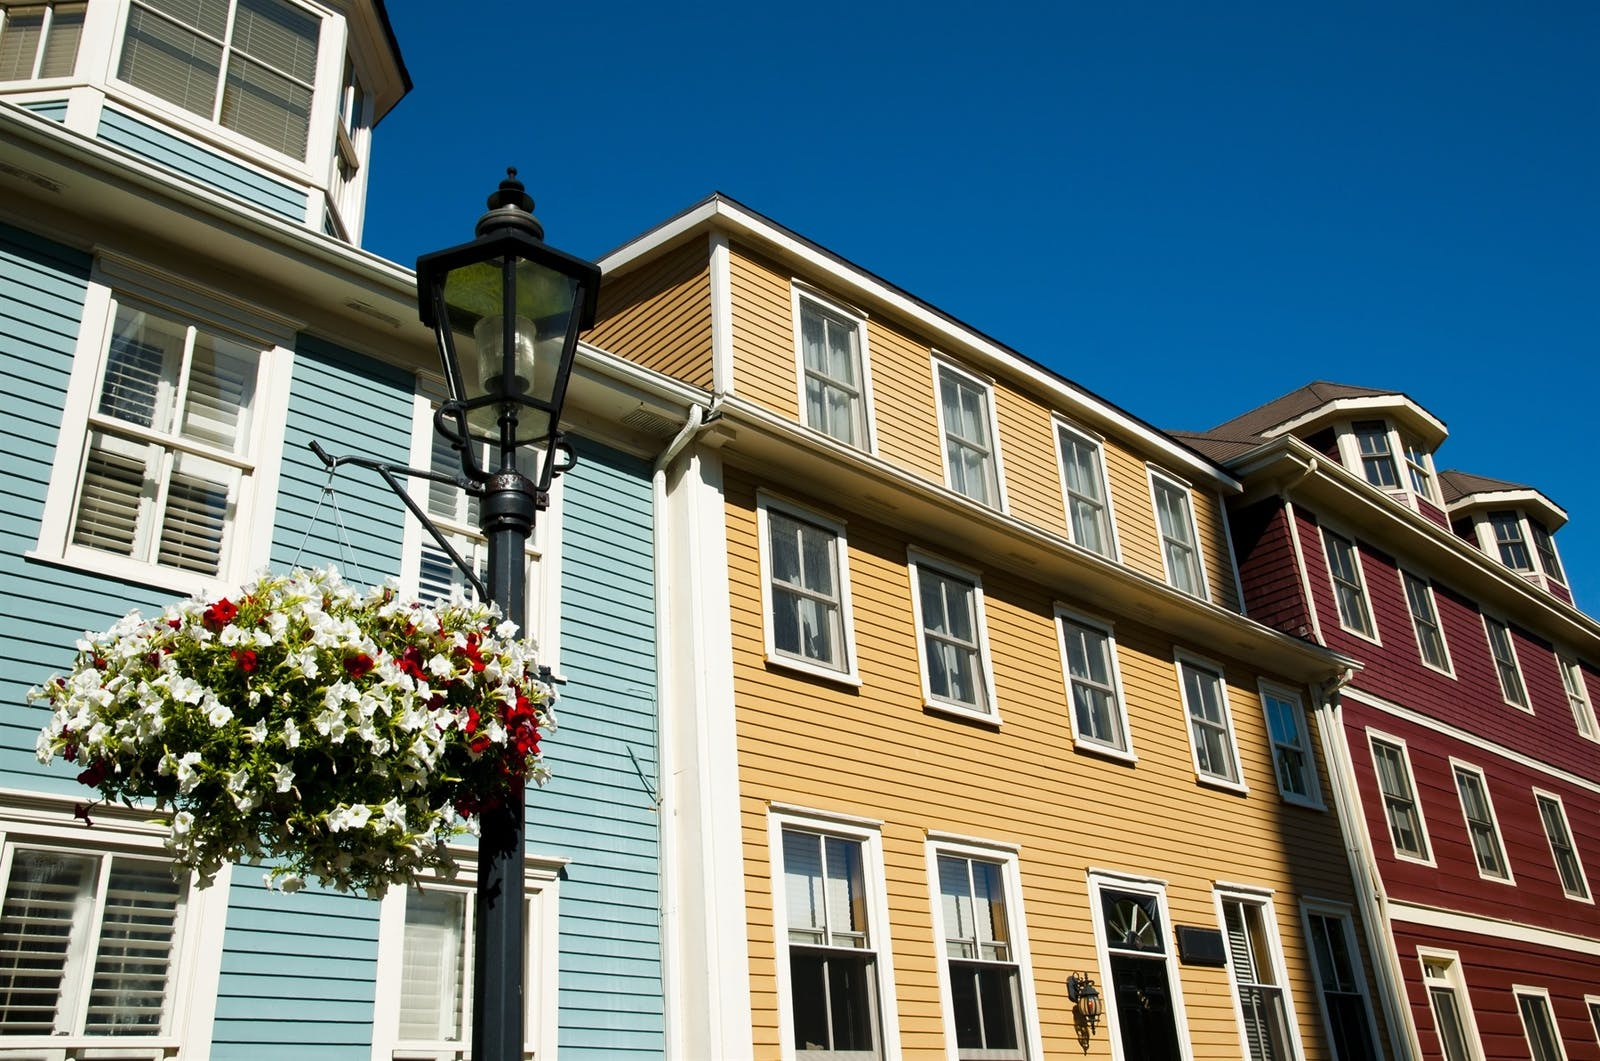 colorful buildings on great george st - charlottetown